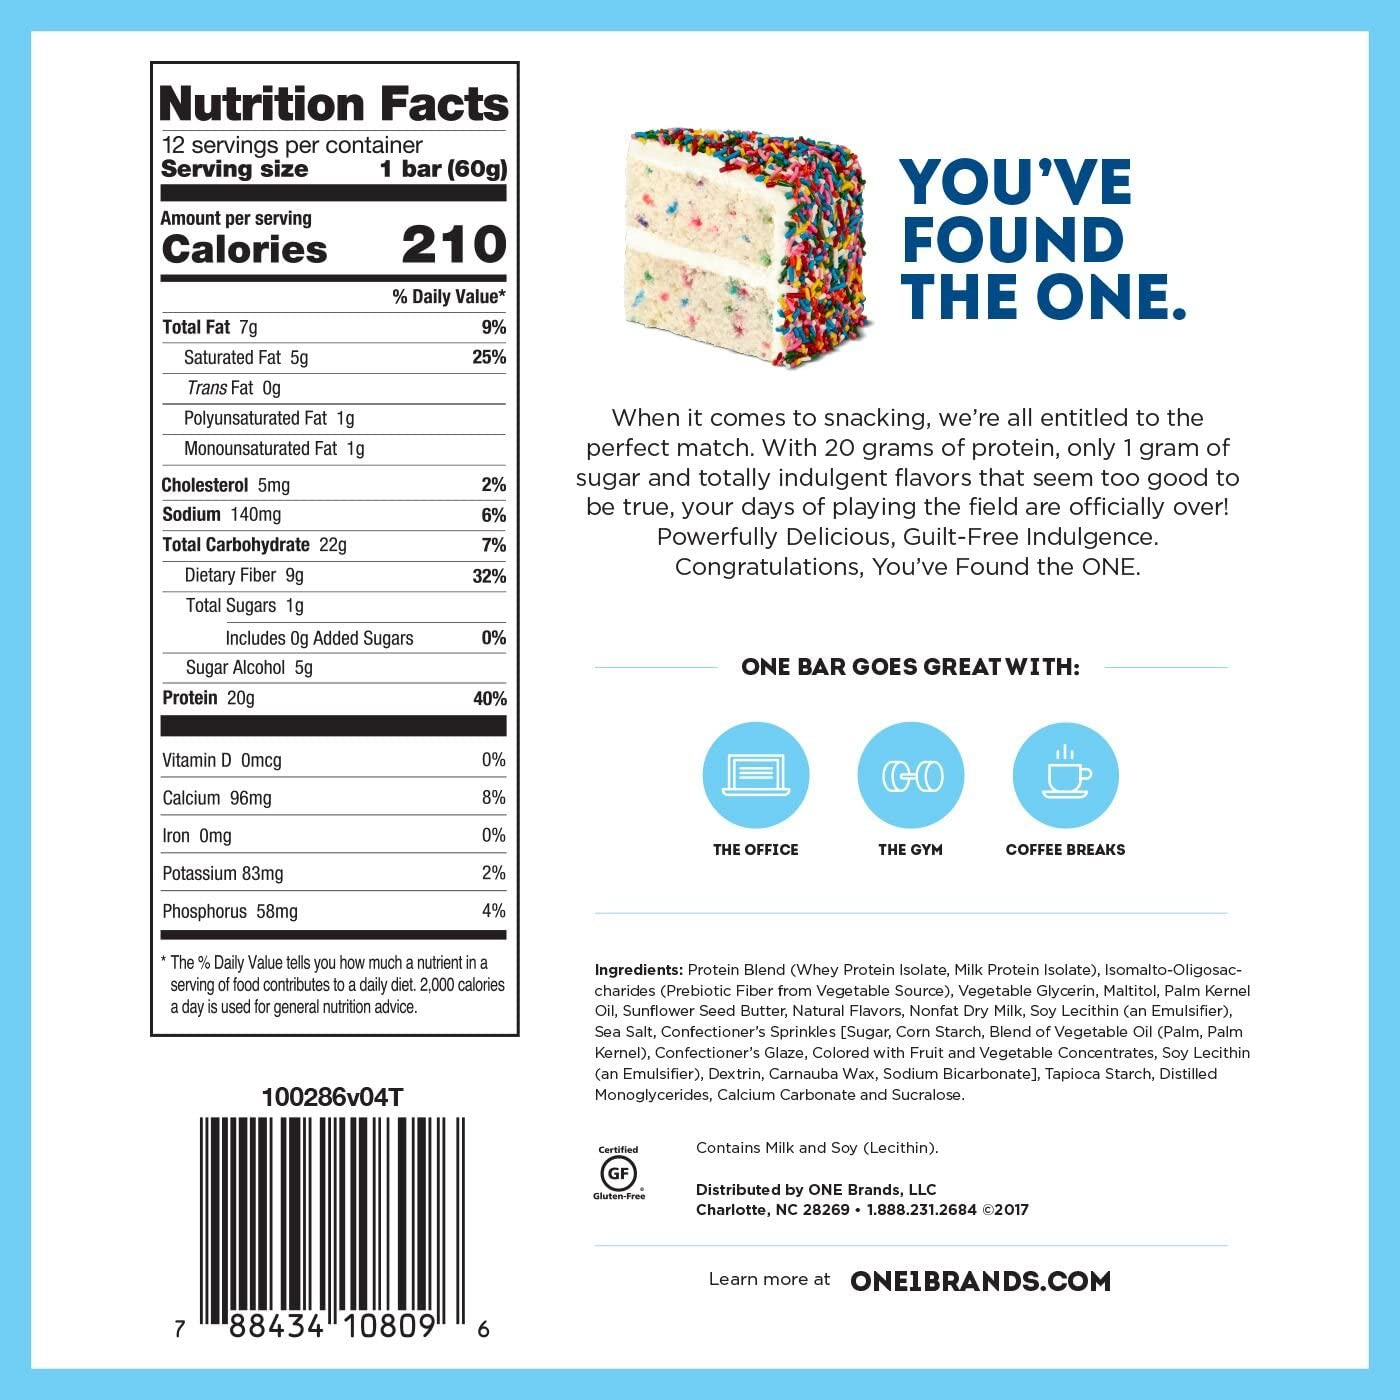 Wondrous One Brand One Bar Birthday Cake 12 Count Amazon Co Uk Health Funny Birthday Cards Online Alyptdamsfinfo